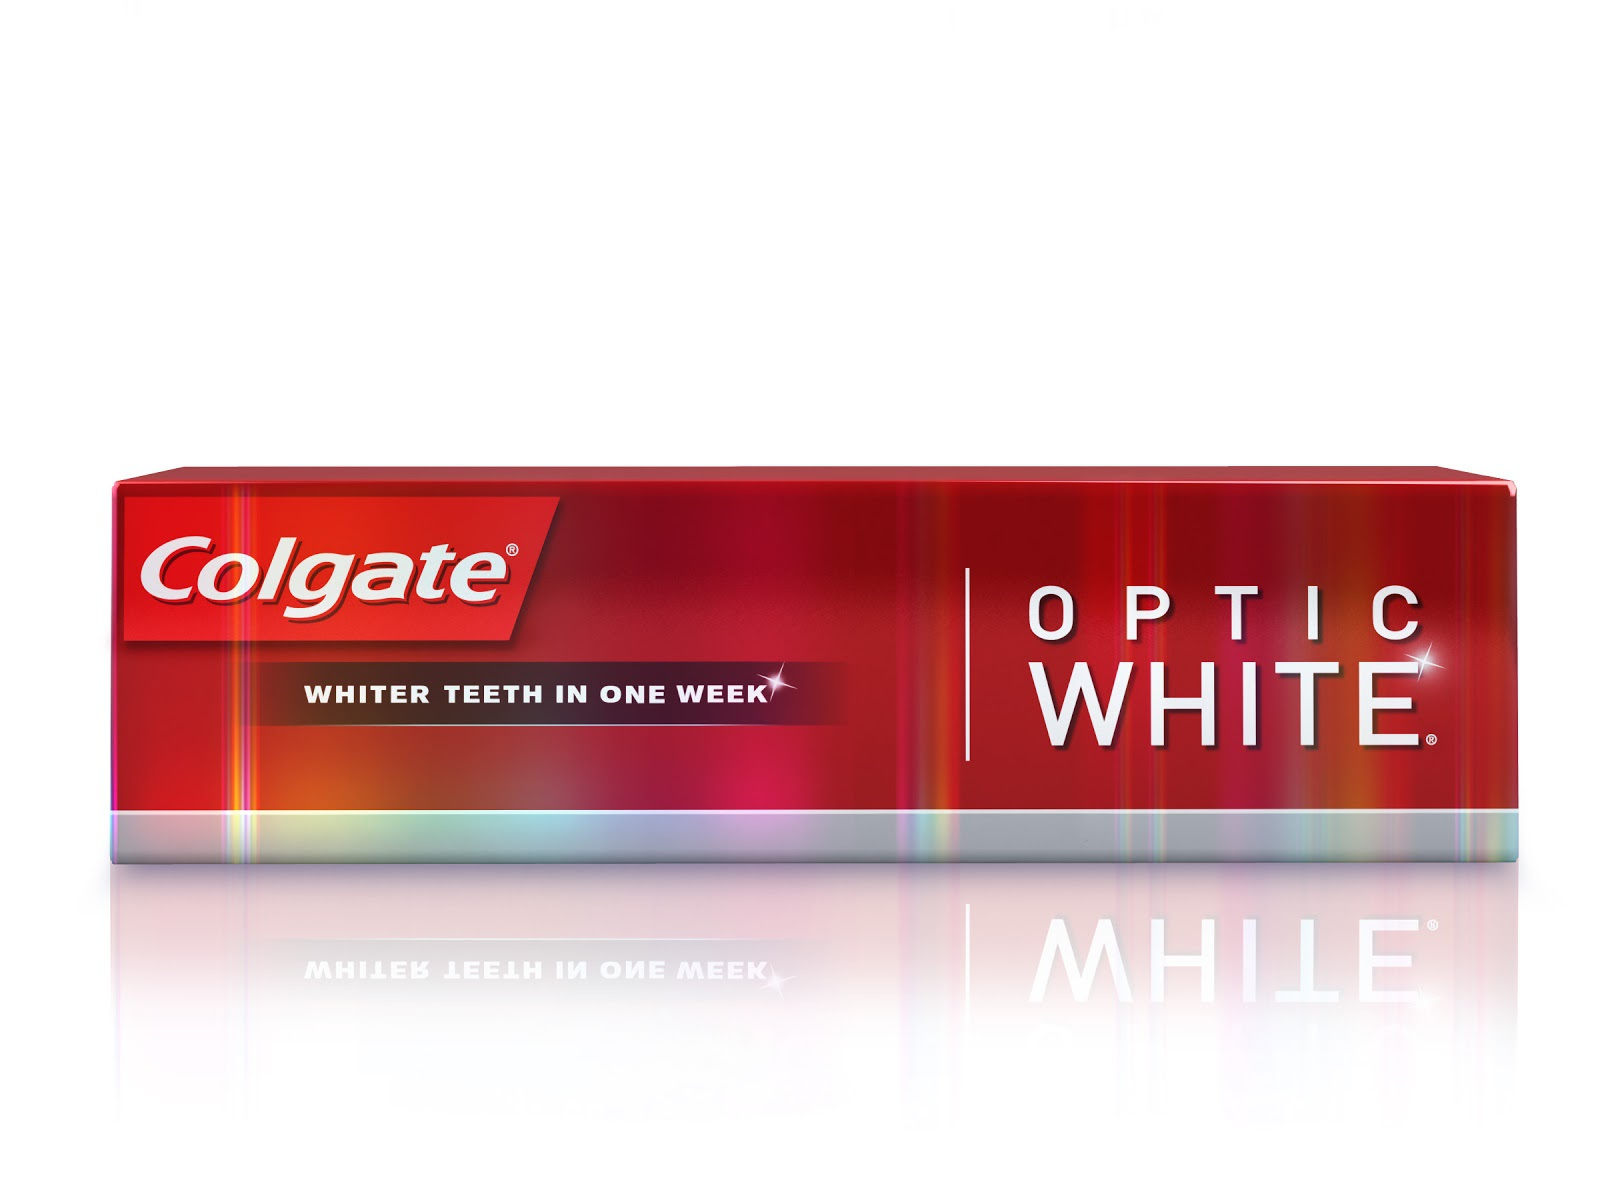 Colgate Optic White Drives % Increase in Brand Interest by Reinventing its Video Strategy February To promote the innovative new Colgate Optic White Express White toothpaste, Colgate-Palmolive put a YouTube video strategy at the core of its integrated media and creative campaigns.